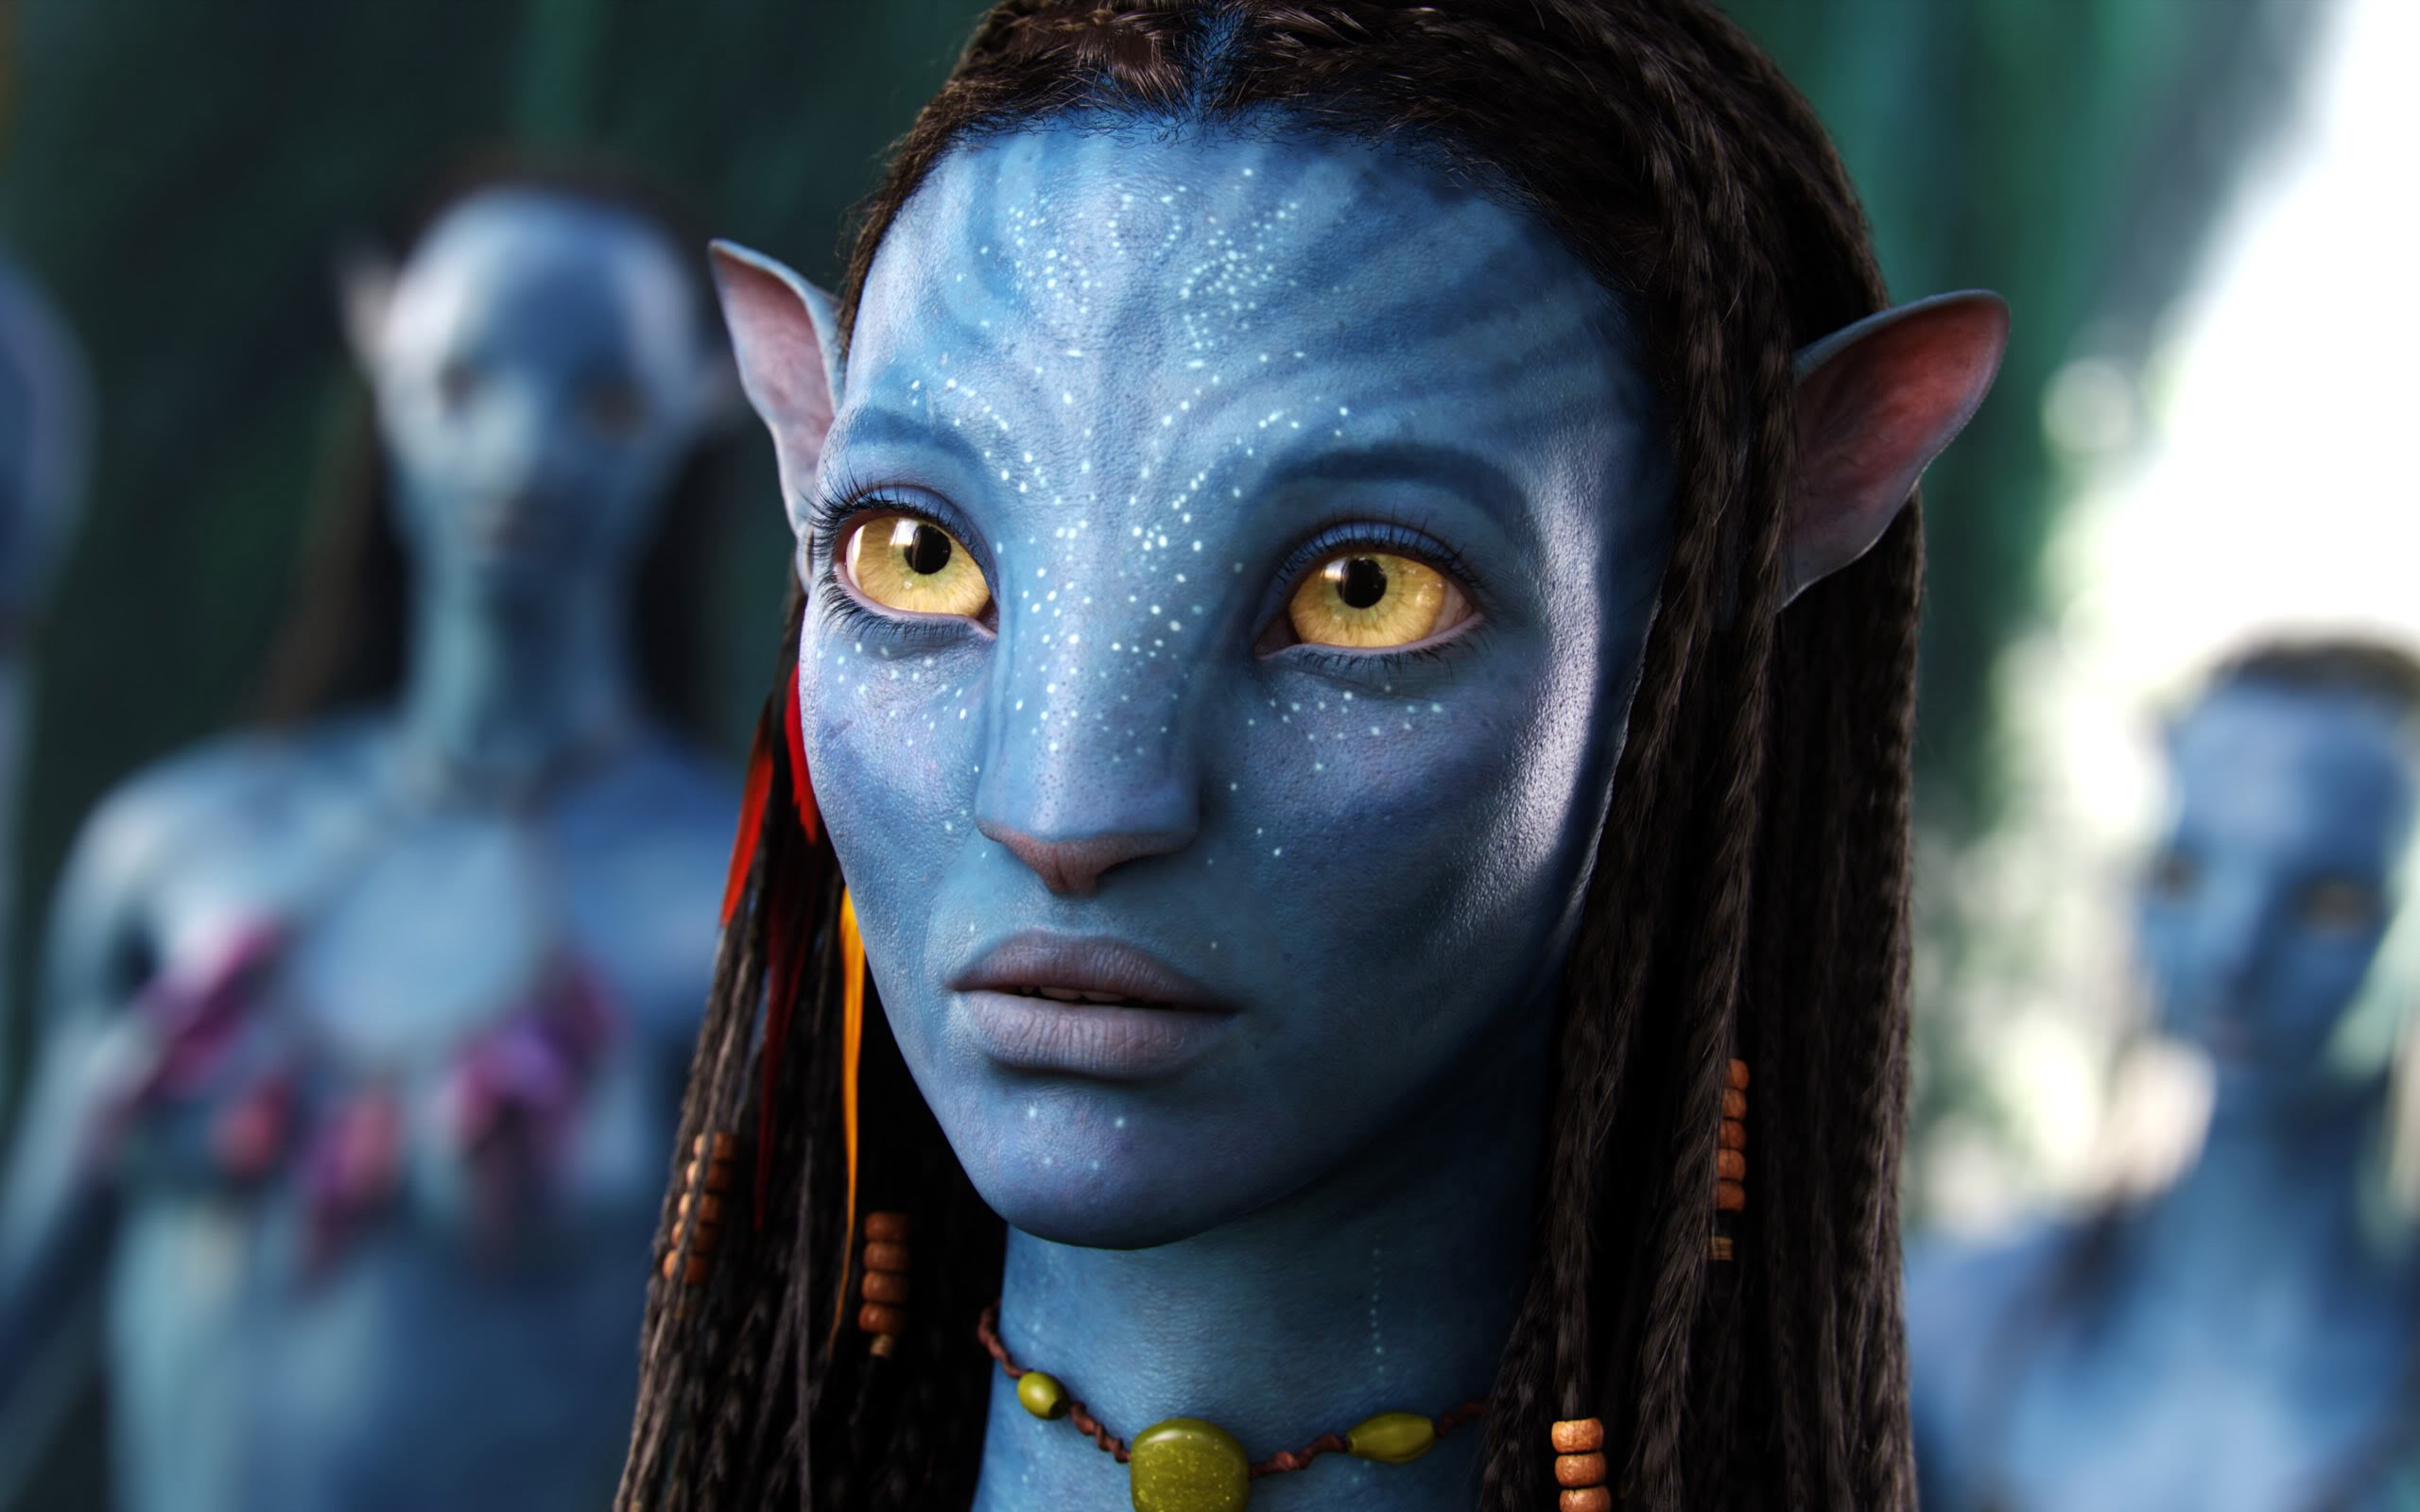 It's kind of weird how little people care about Avatar